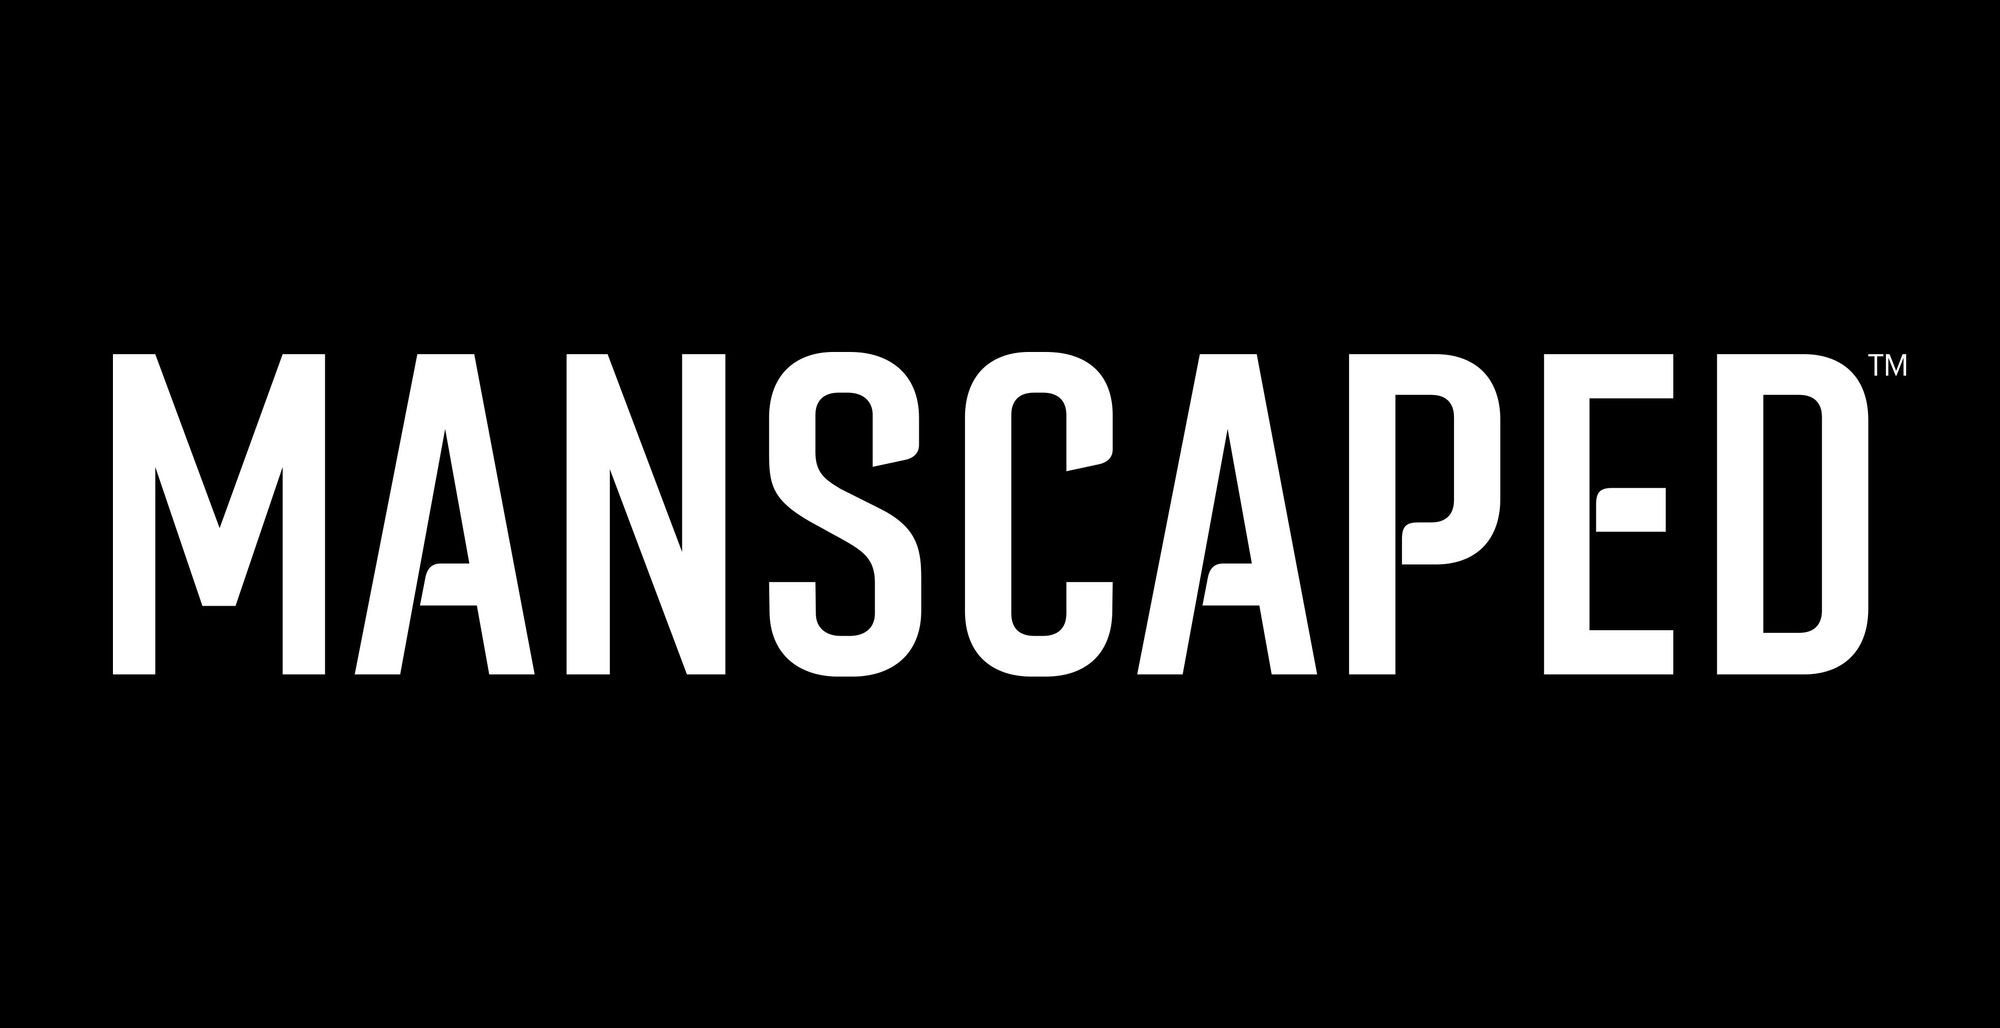 Benefits Of Using Manscaped™